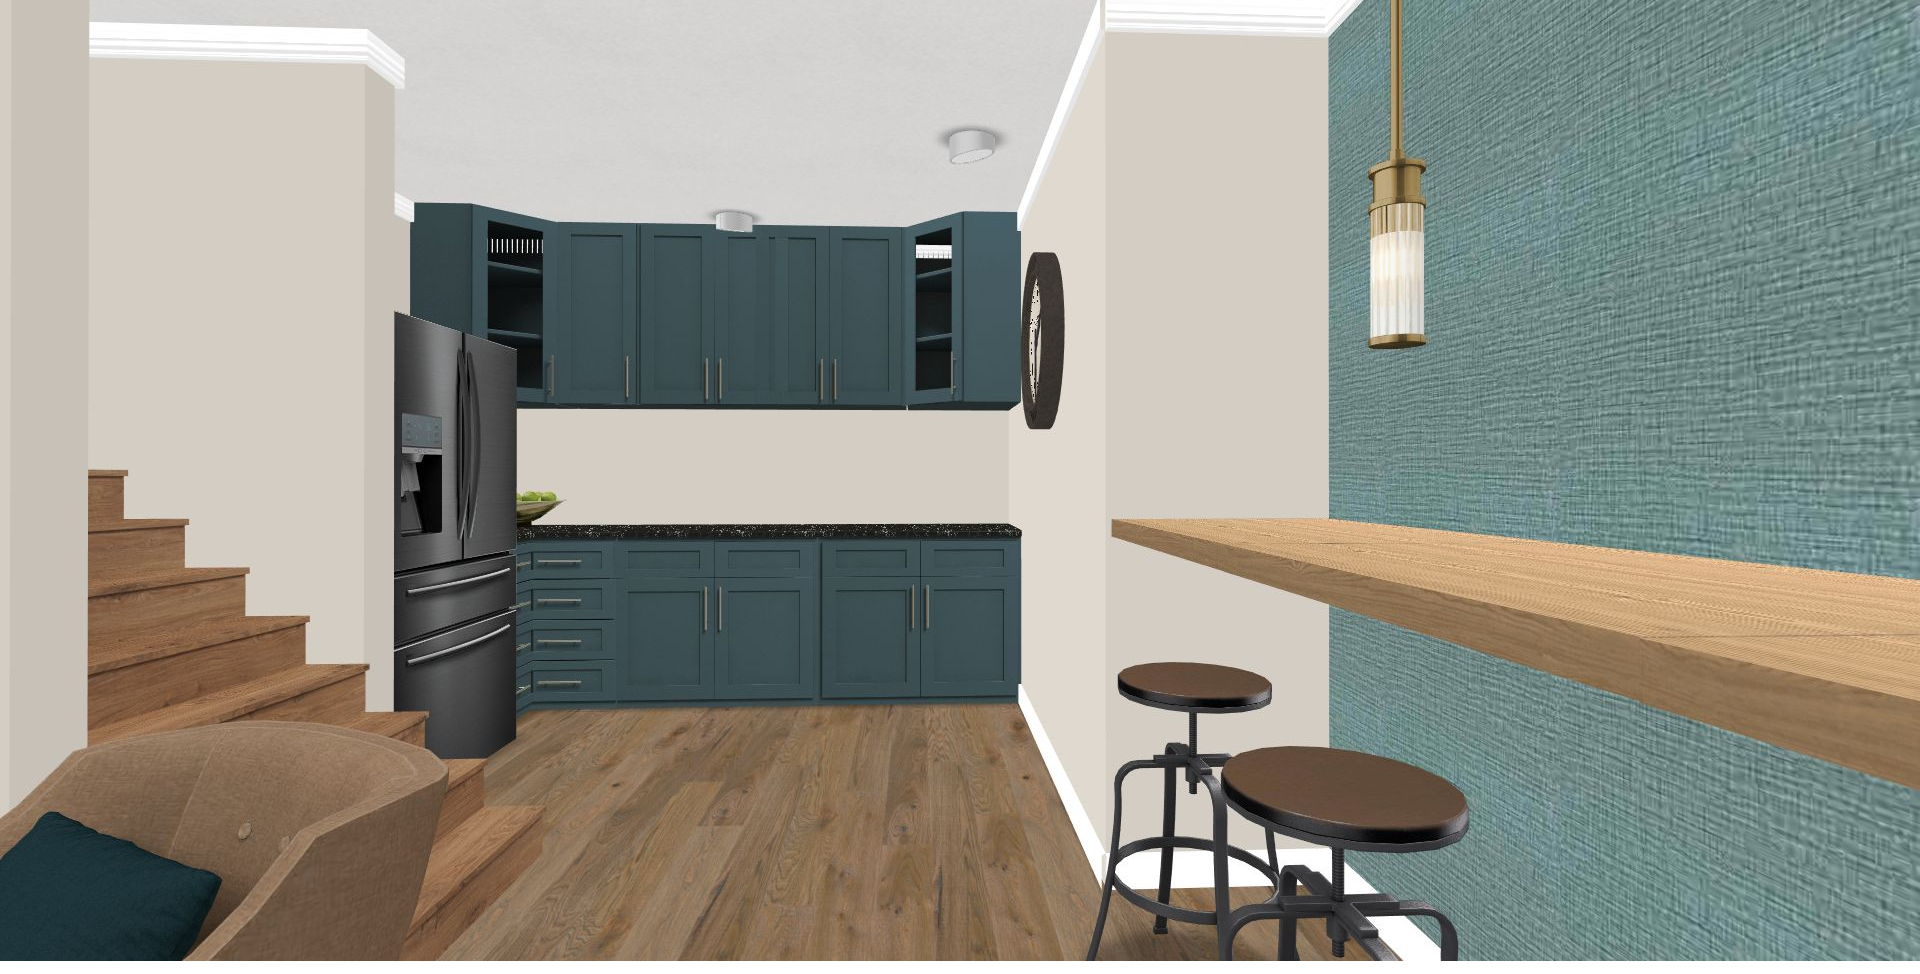 Kaoud Basement Interior Rendering - Kitchen 1.png